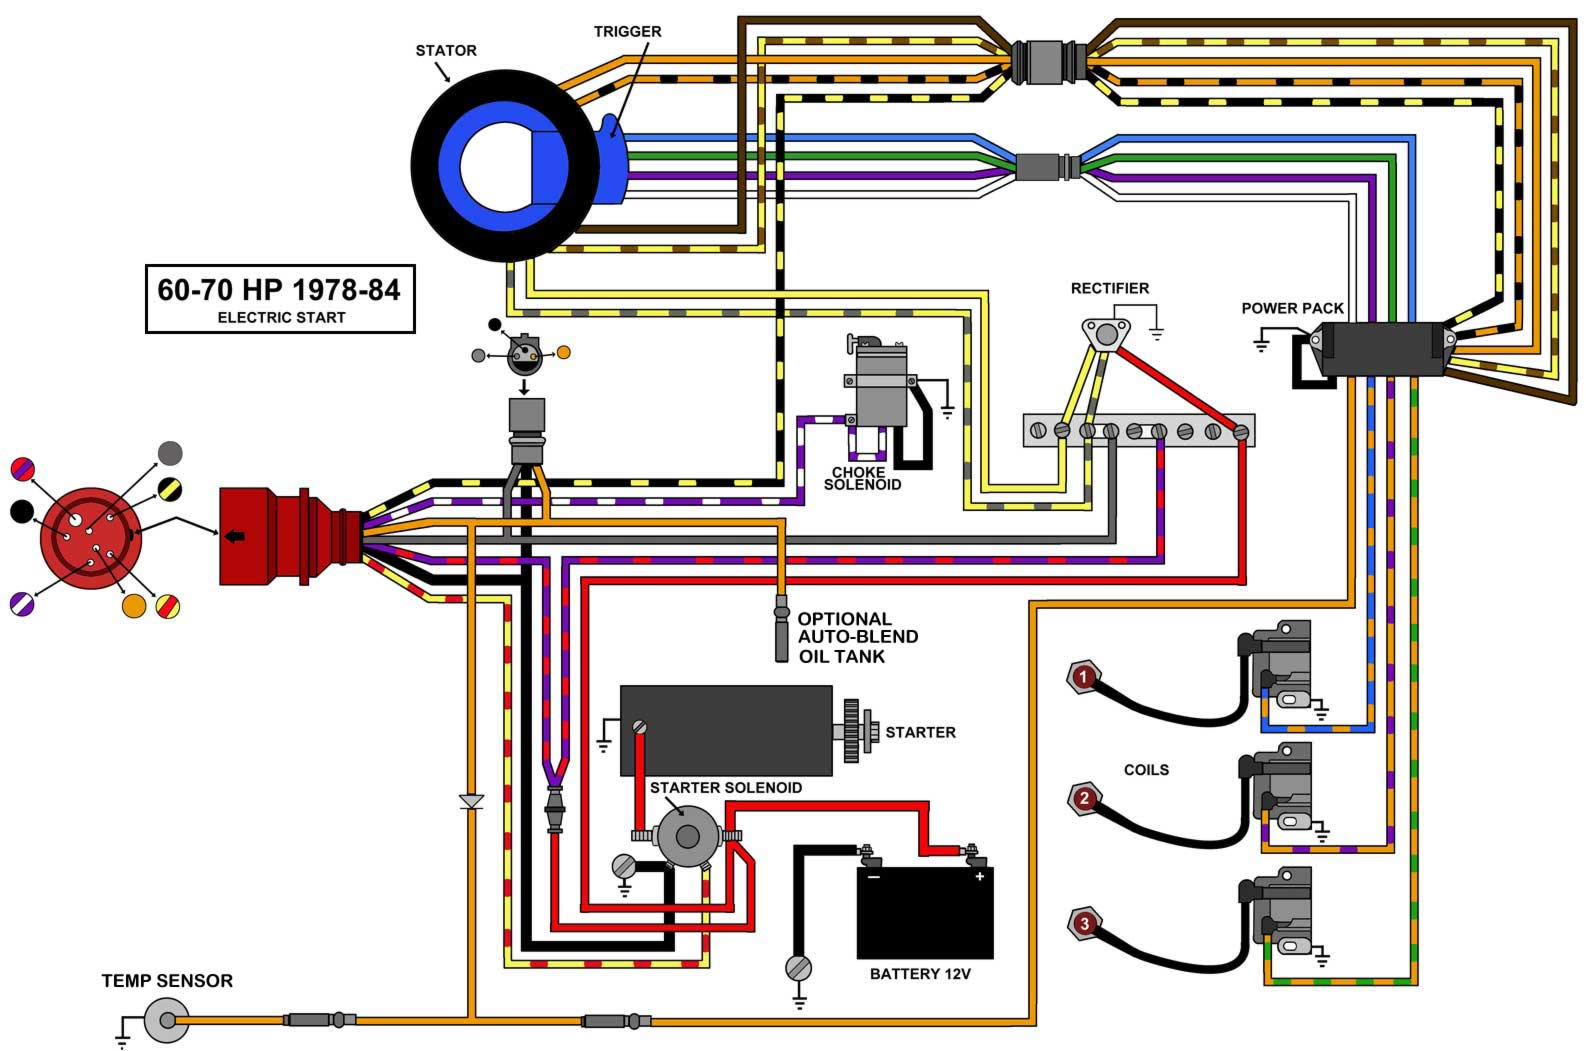 johnson outboard starter wiring diagram wiring diagrams and 84 115 evinrude is there a proper wire diagram wiring connection